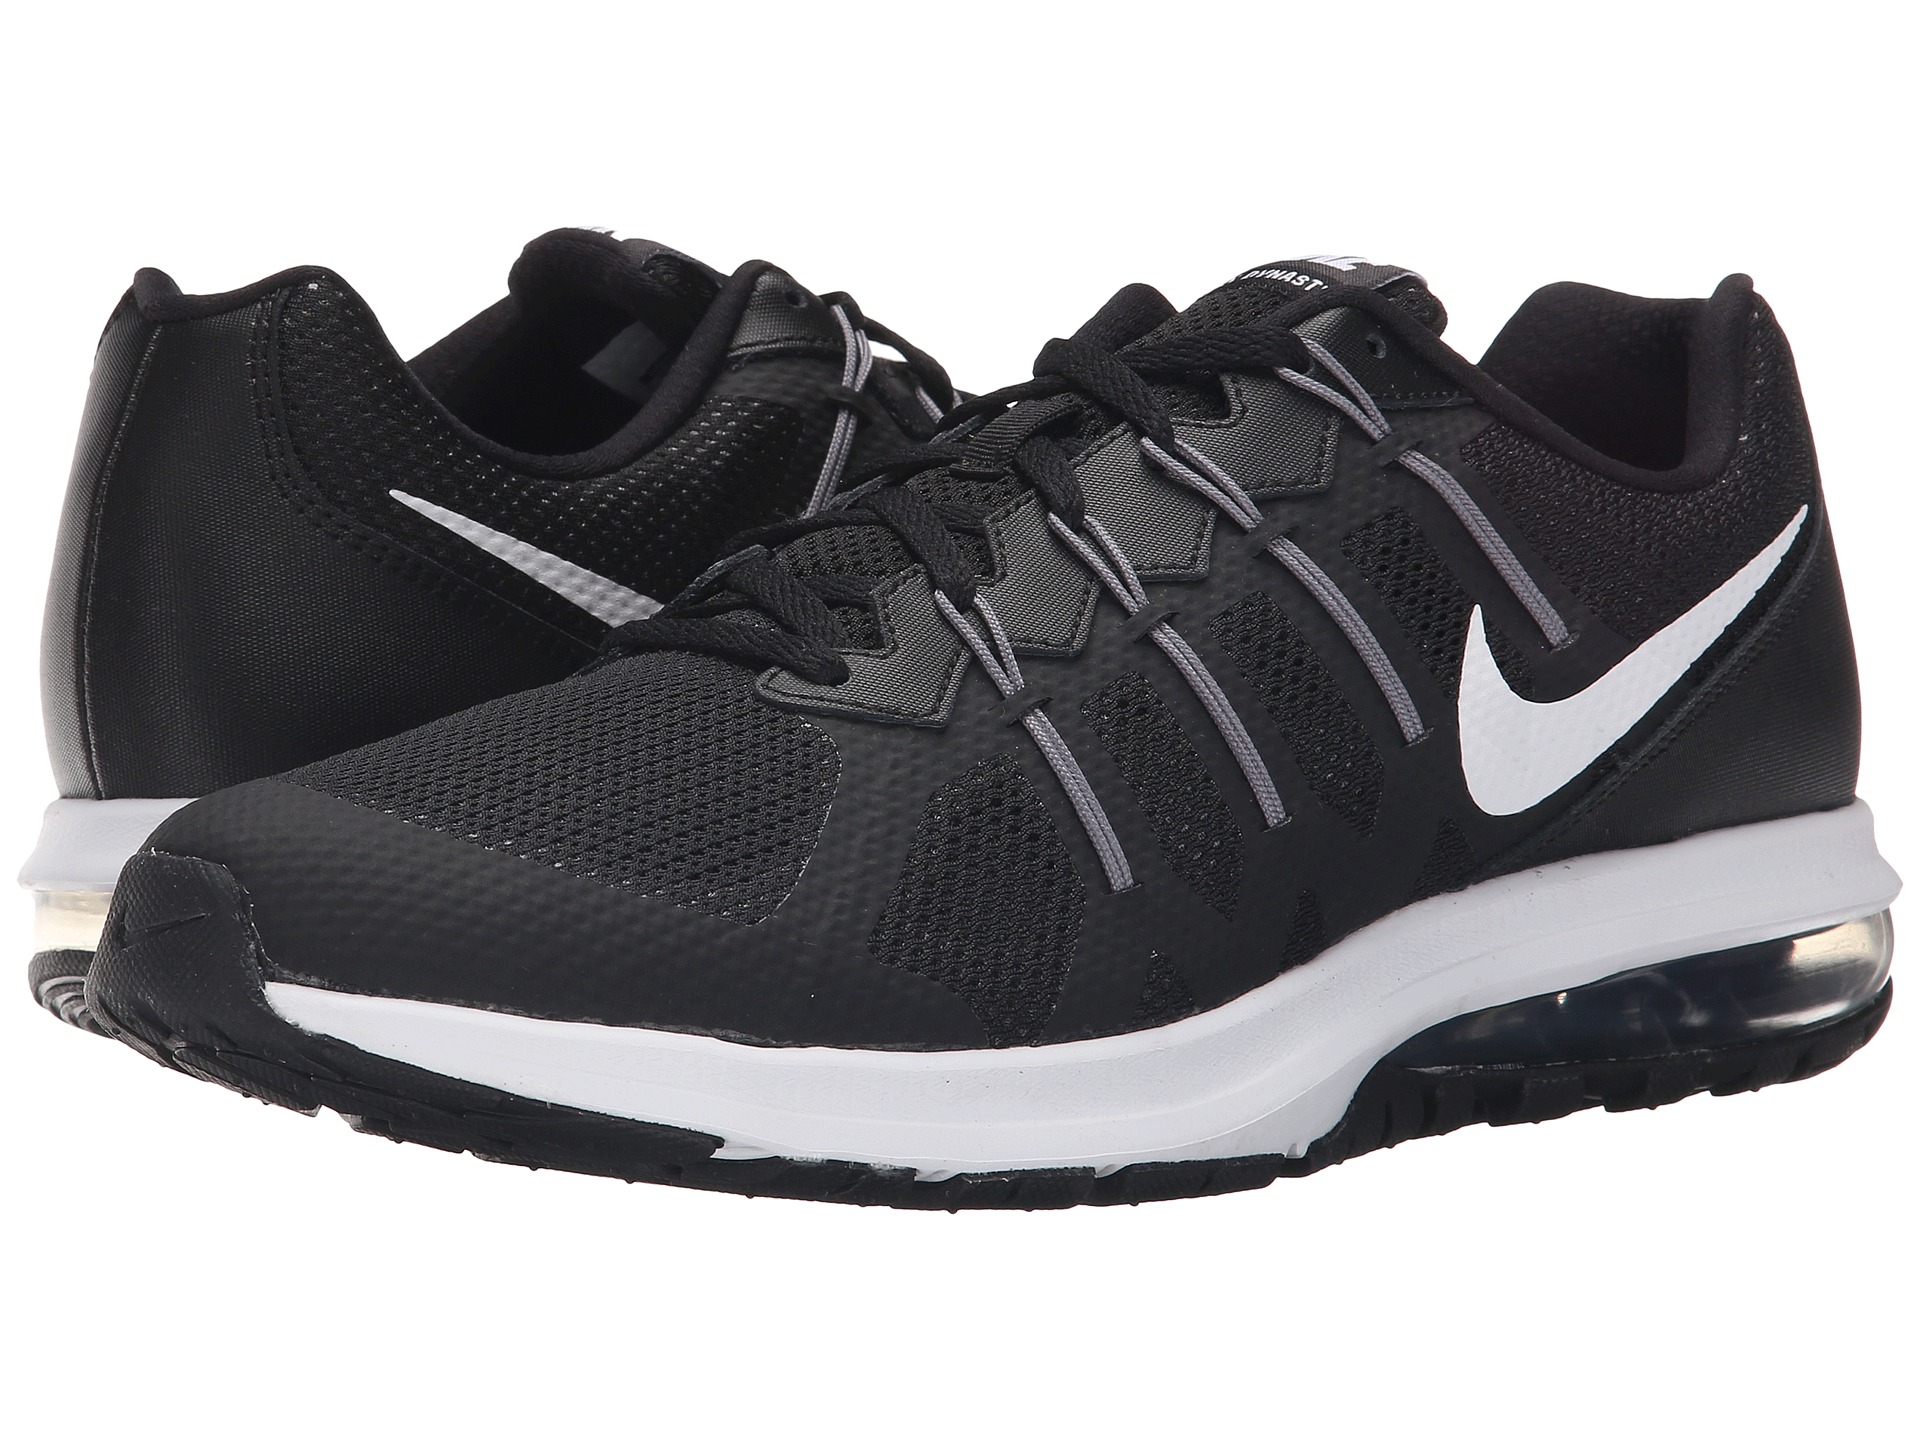 Nike Air Max 2010 Fashion Black White Mens Running Trainers Shoes